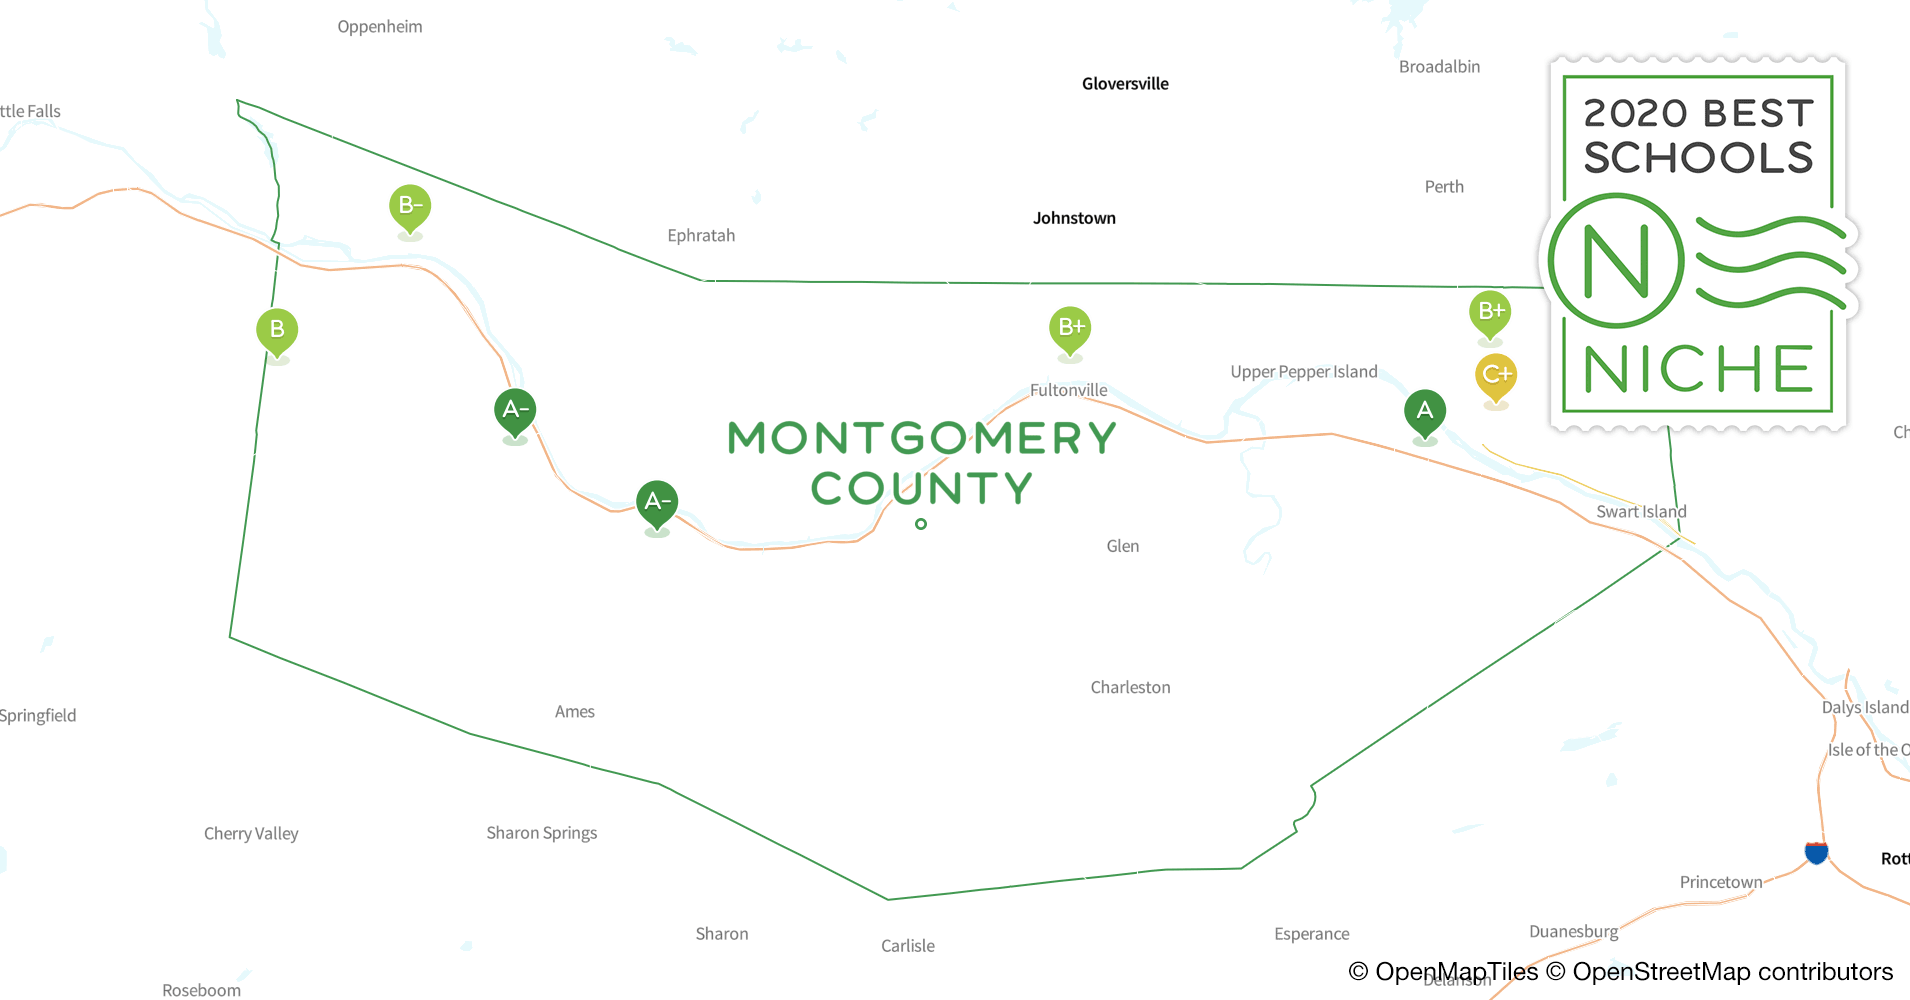 School Districts in Montgomery County, NY - Niche